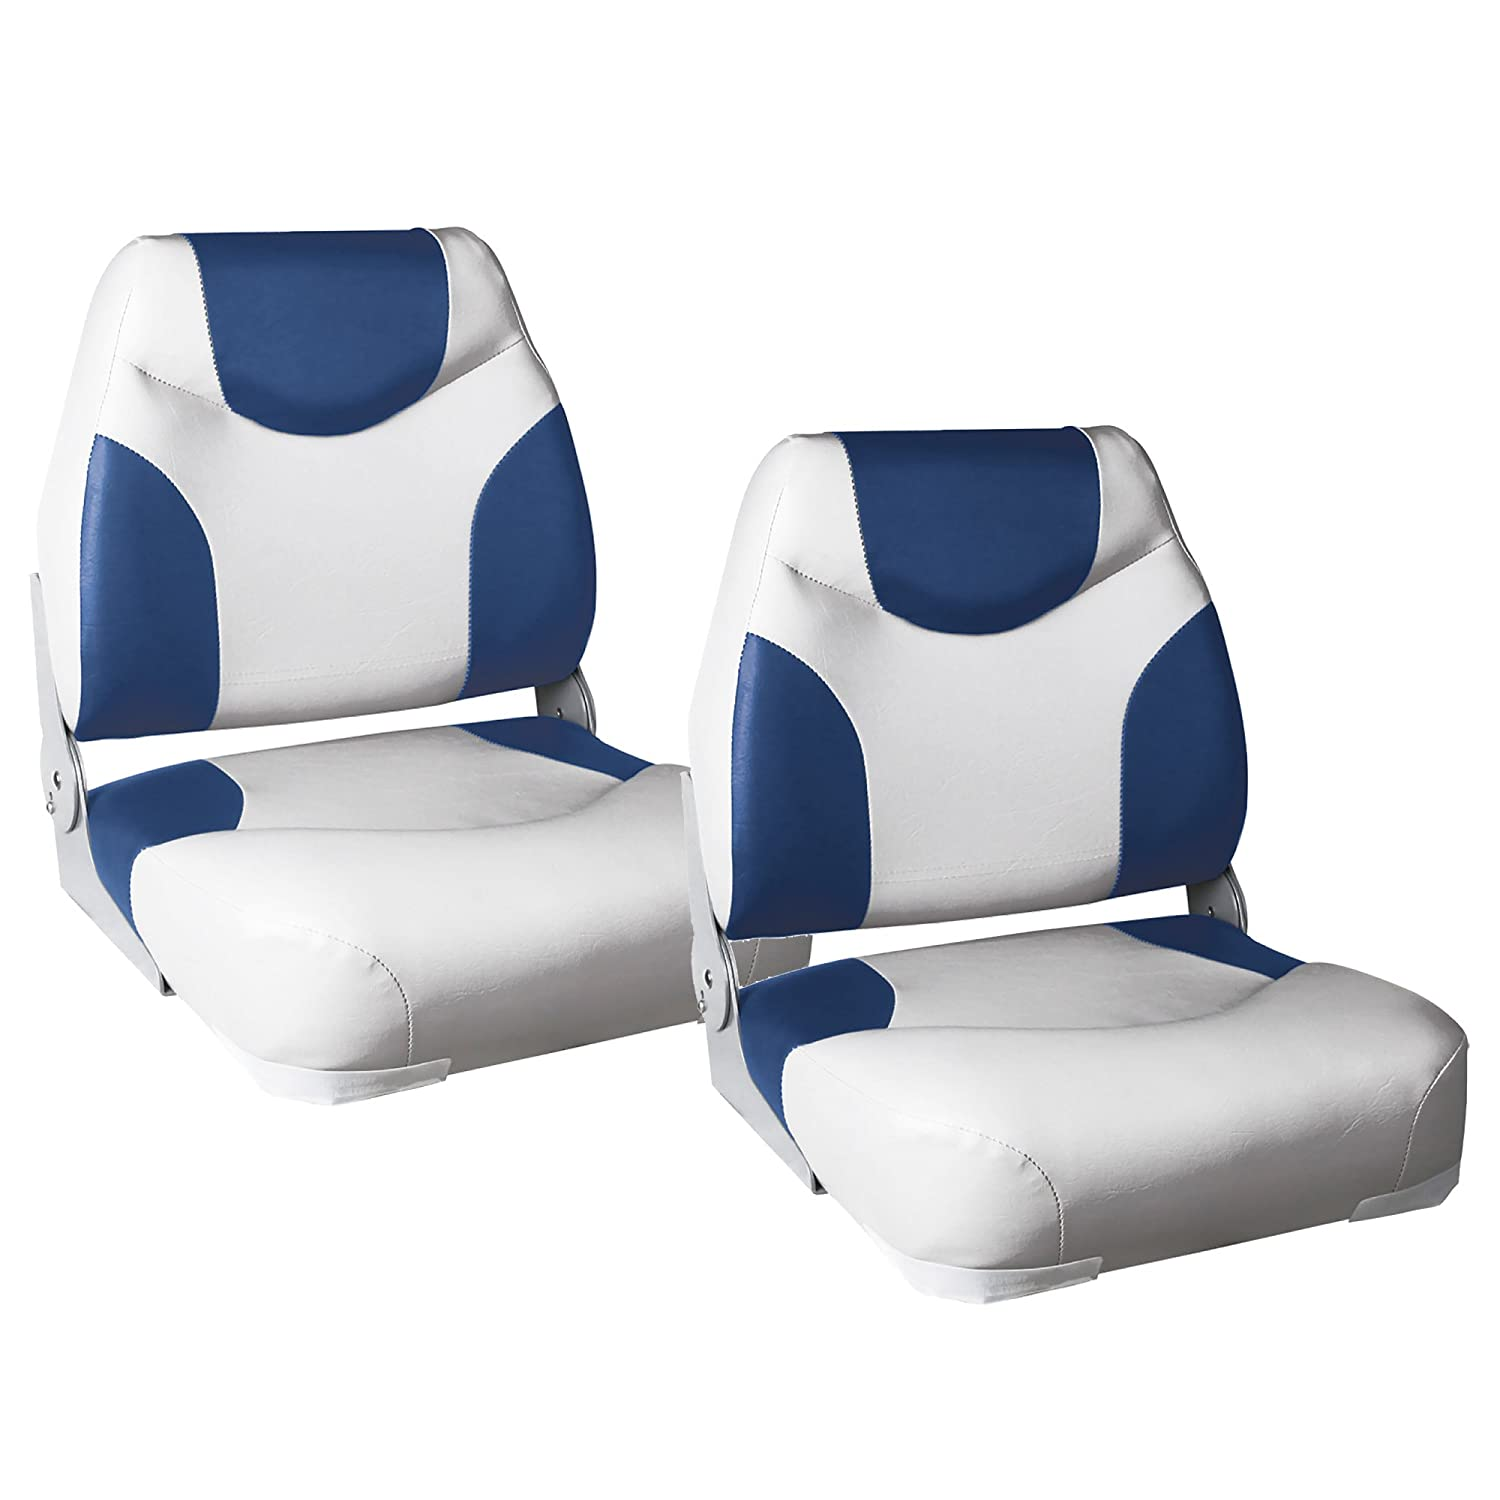 "'""Exclusive Line (Assorted Colours) [Pro. Tec] 2x Boat Seats in Economy Pack – Made from waterproof/Water-Resistant/Padded/Captain's Chair/Table/UV-Resistant [pro.tec]®"